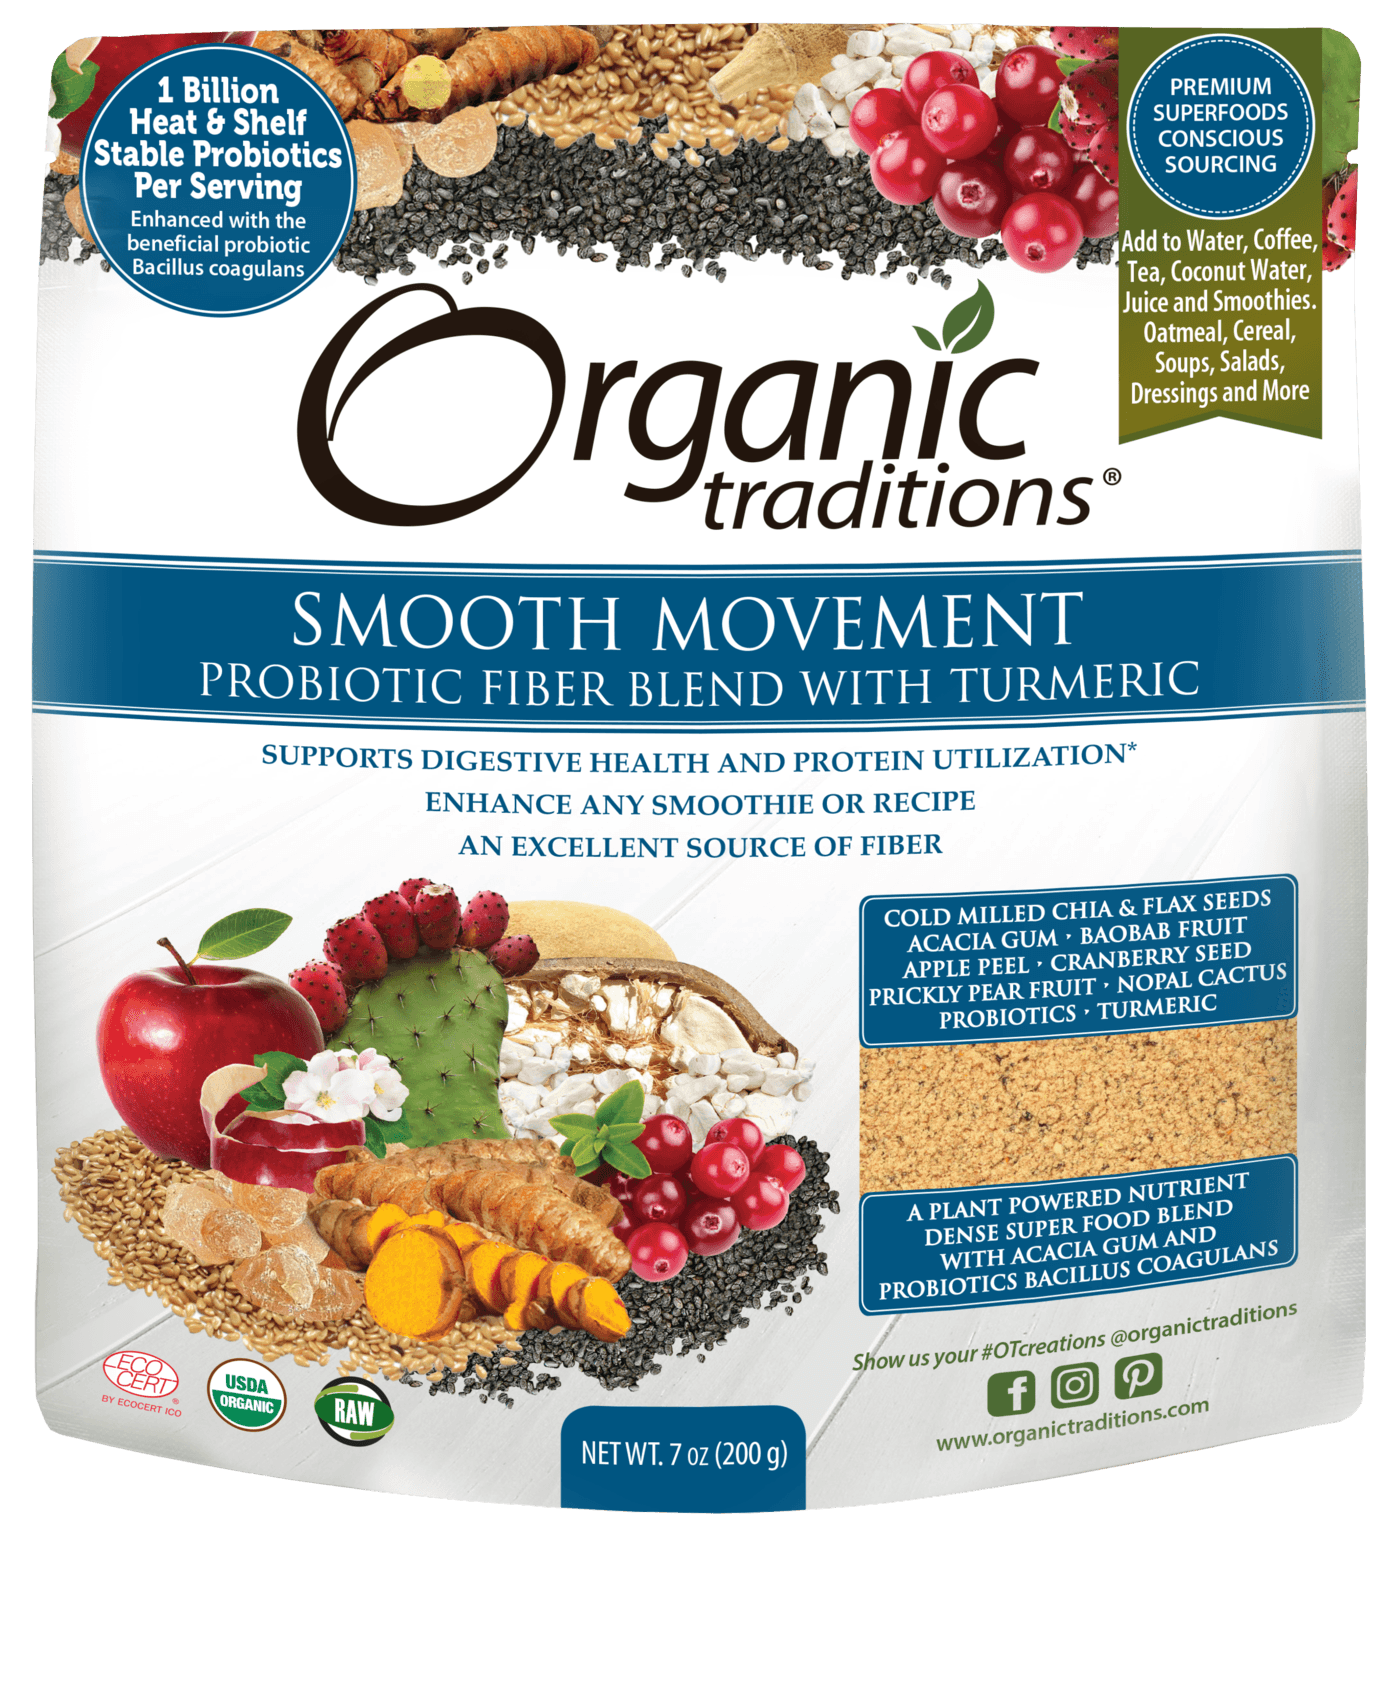 Supplements - Organic Traditions - Smooth Movement Probiotic Fibre Blend With Turmeric, 200g